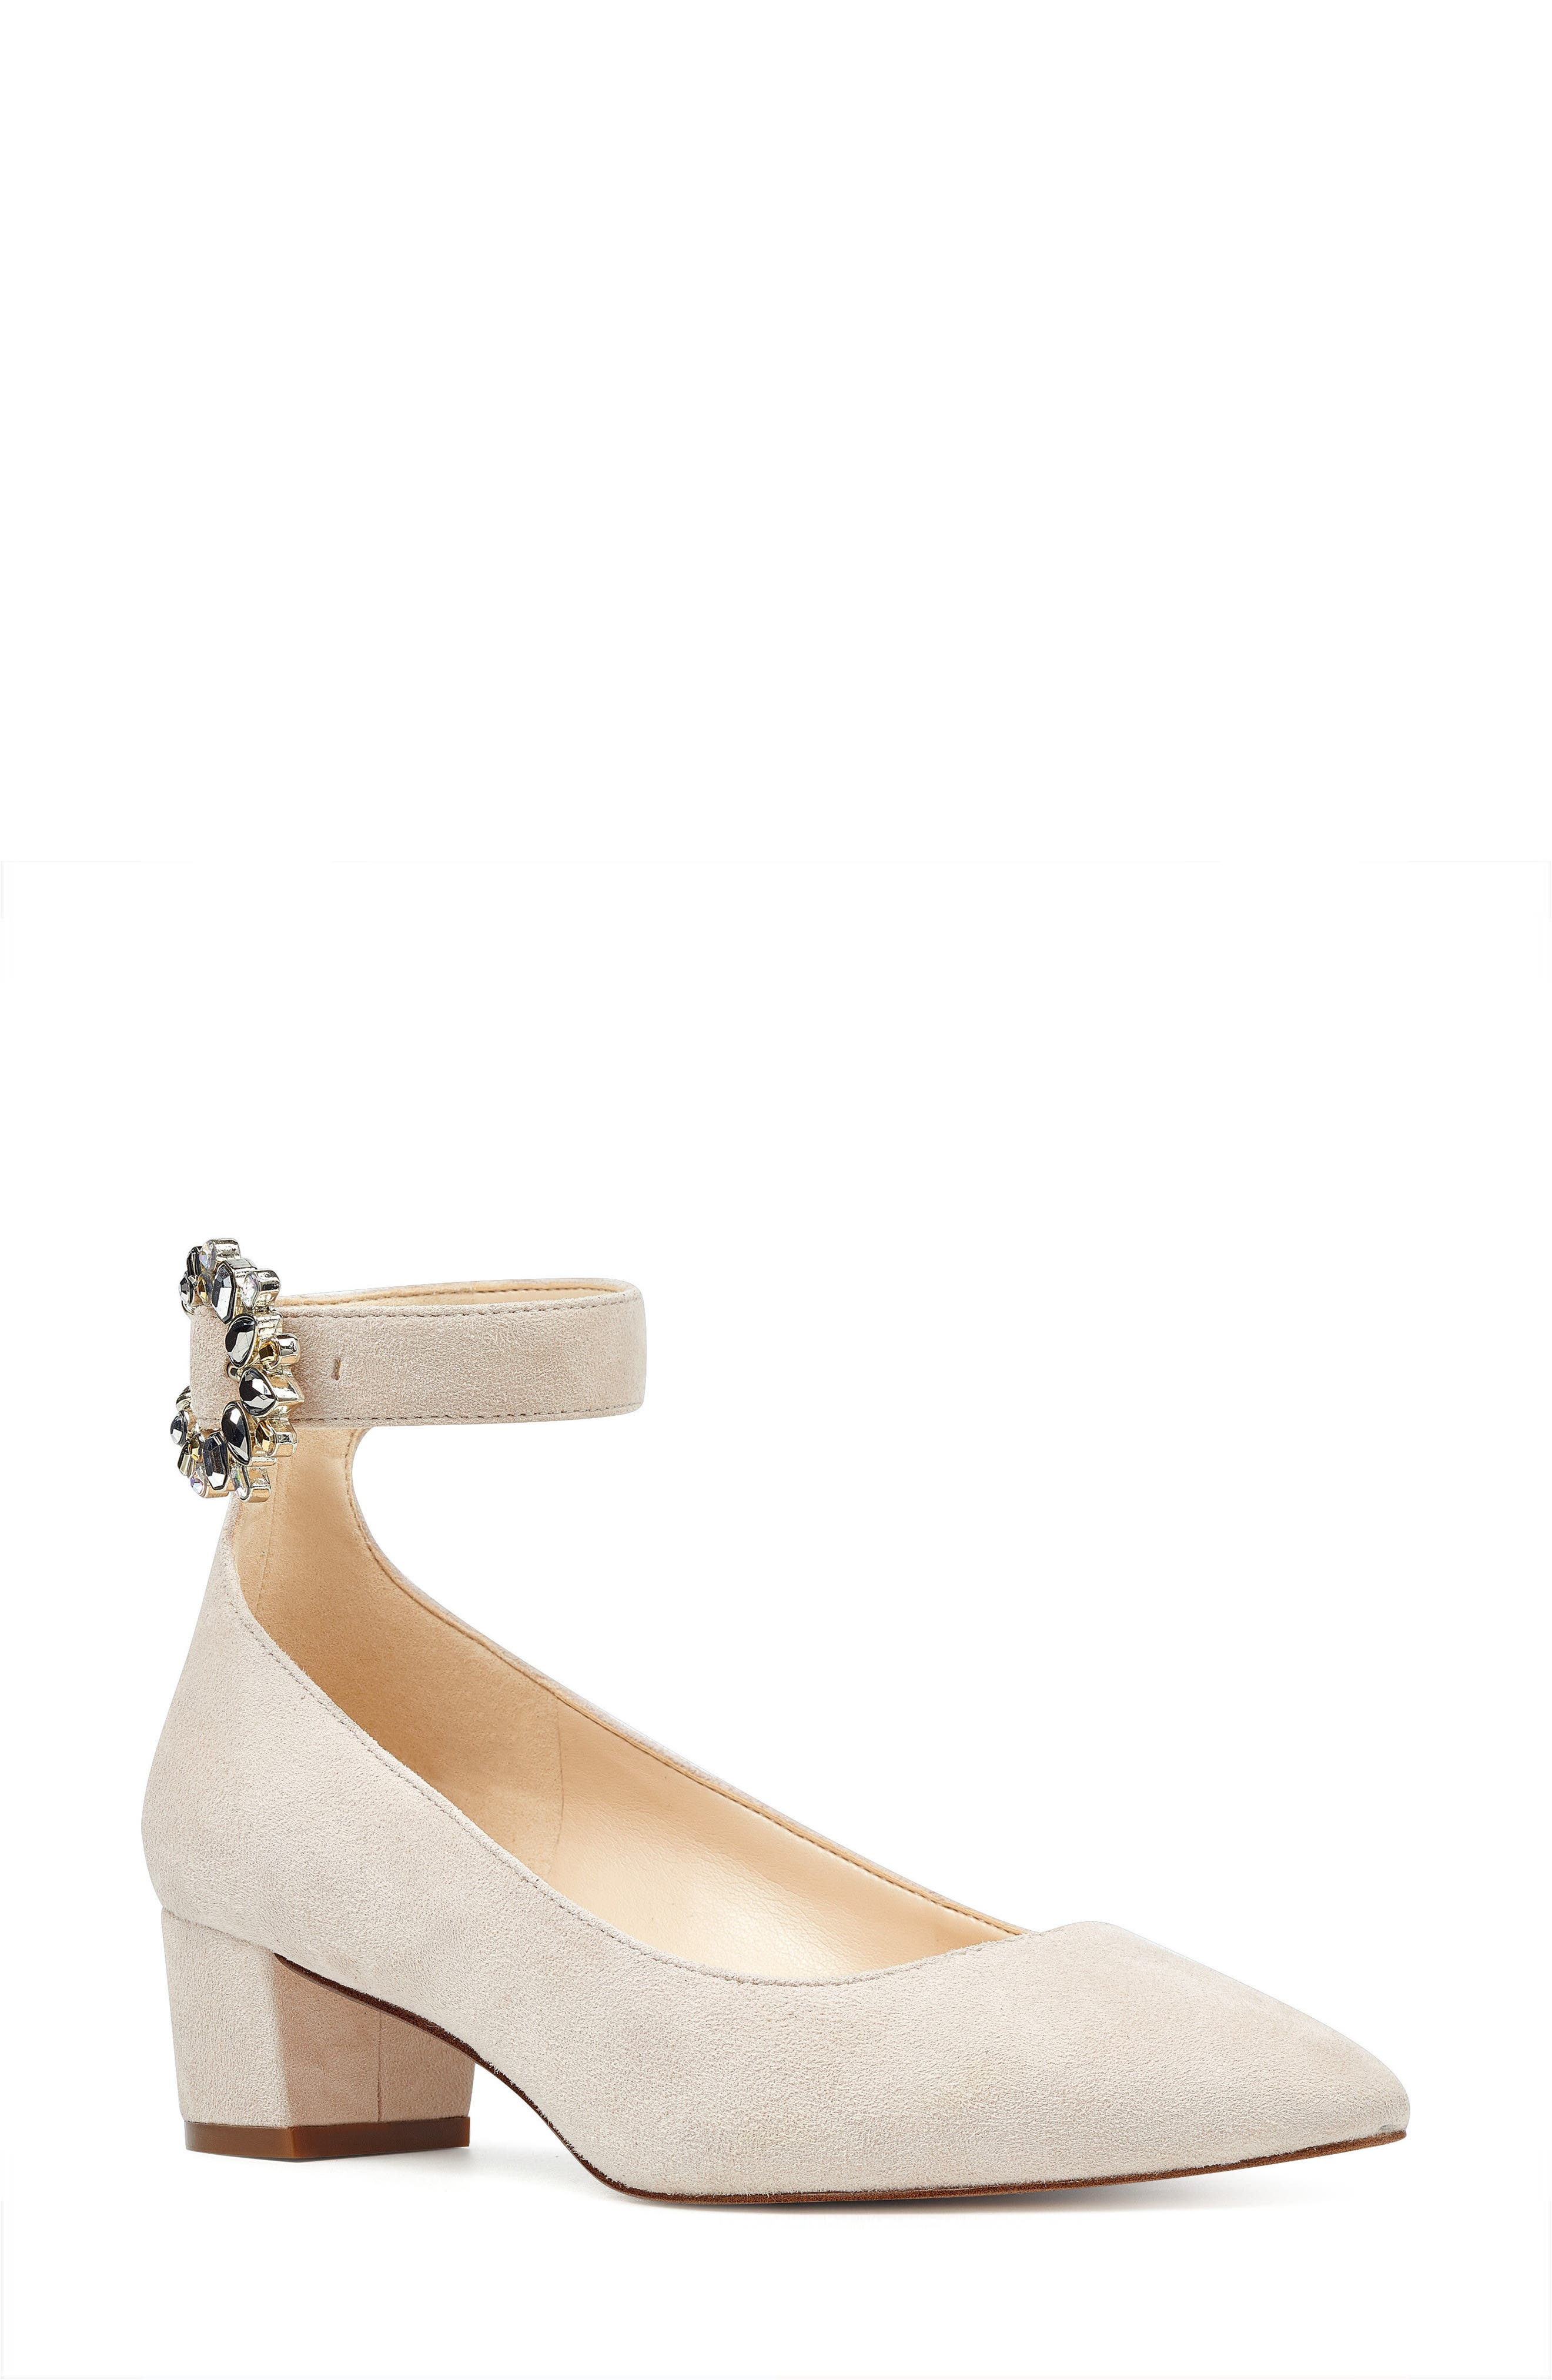 Bartly Ankle Strap Pump,                             Main thumbnail 2, color,